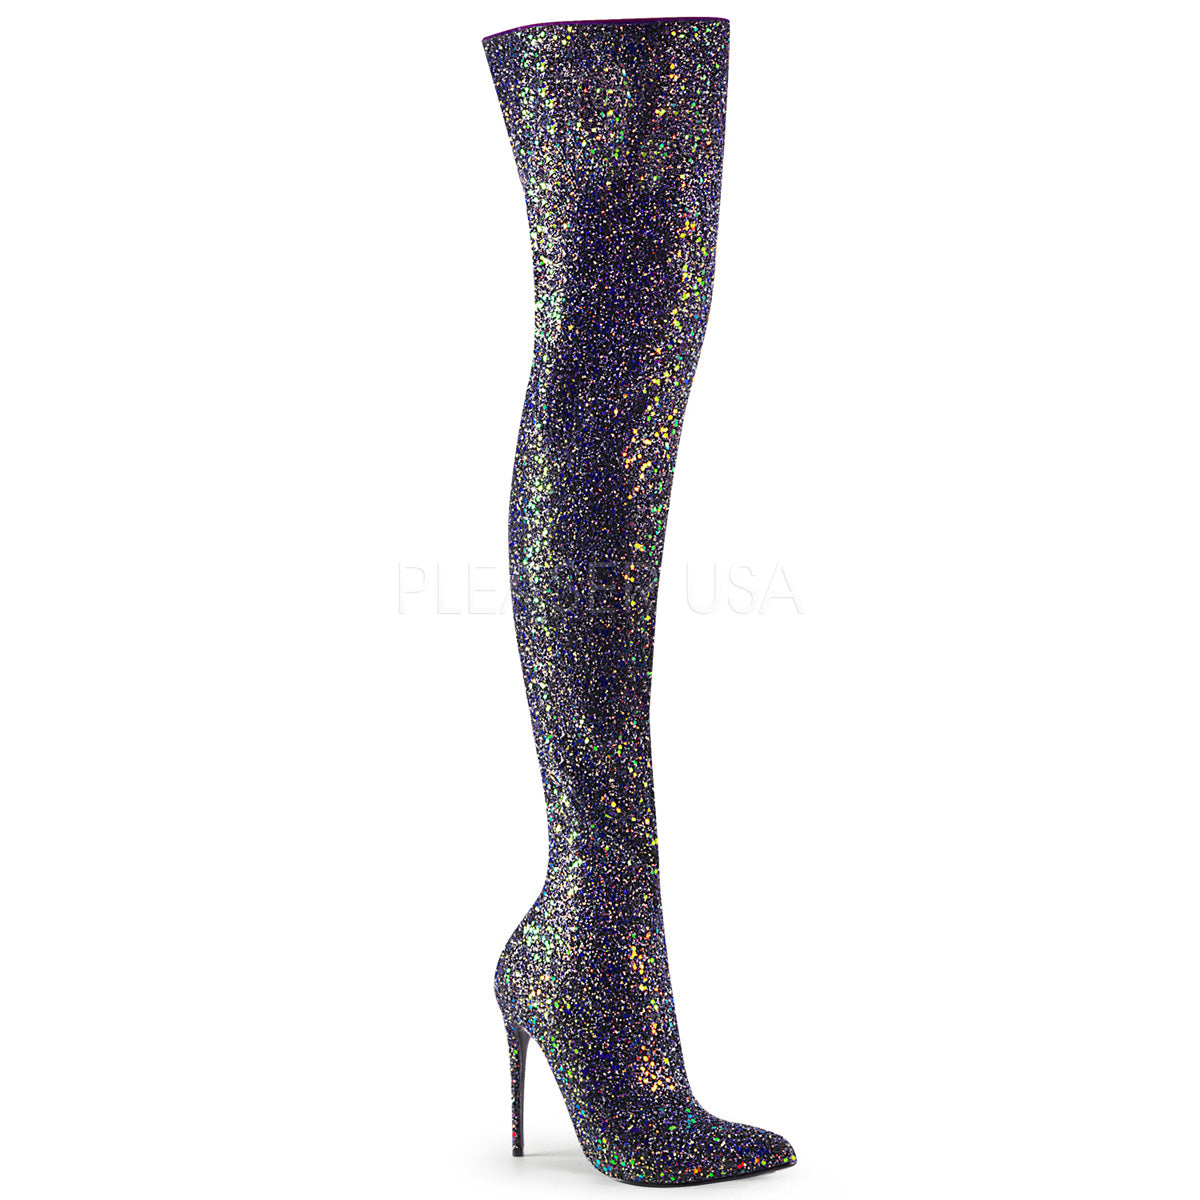 "5"" Heel COURTLY-3015 Black Glitter"